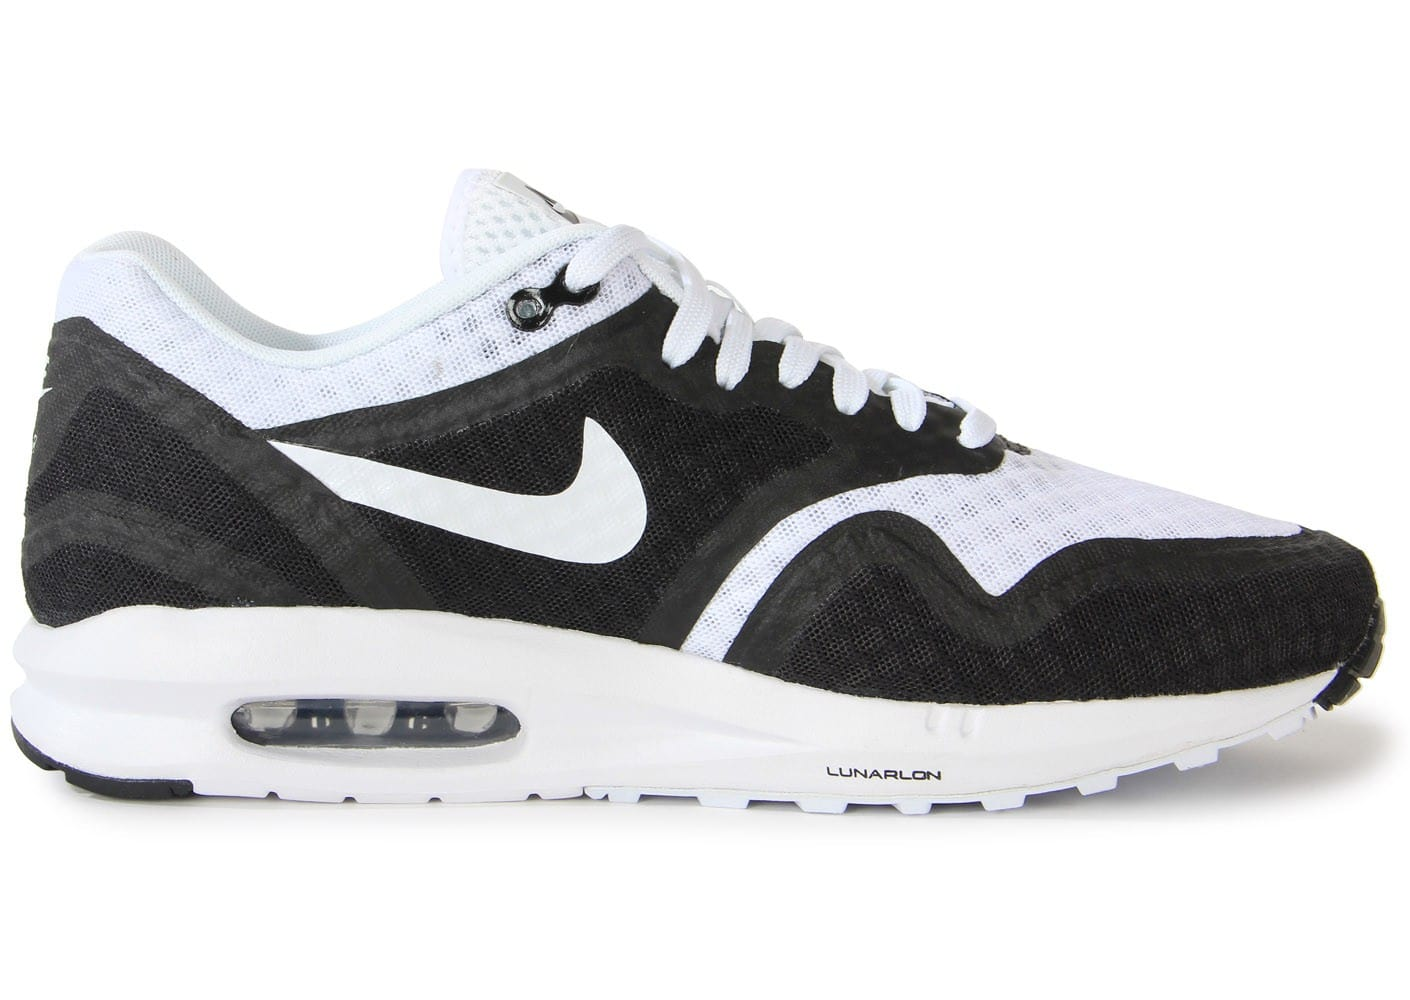 Noire Et Max Lunar 1 Chaussures Baskets Blanche Homme Nike Air Br srQdCth